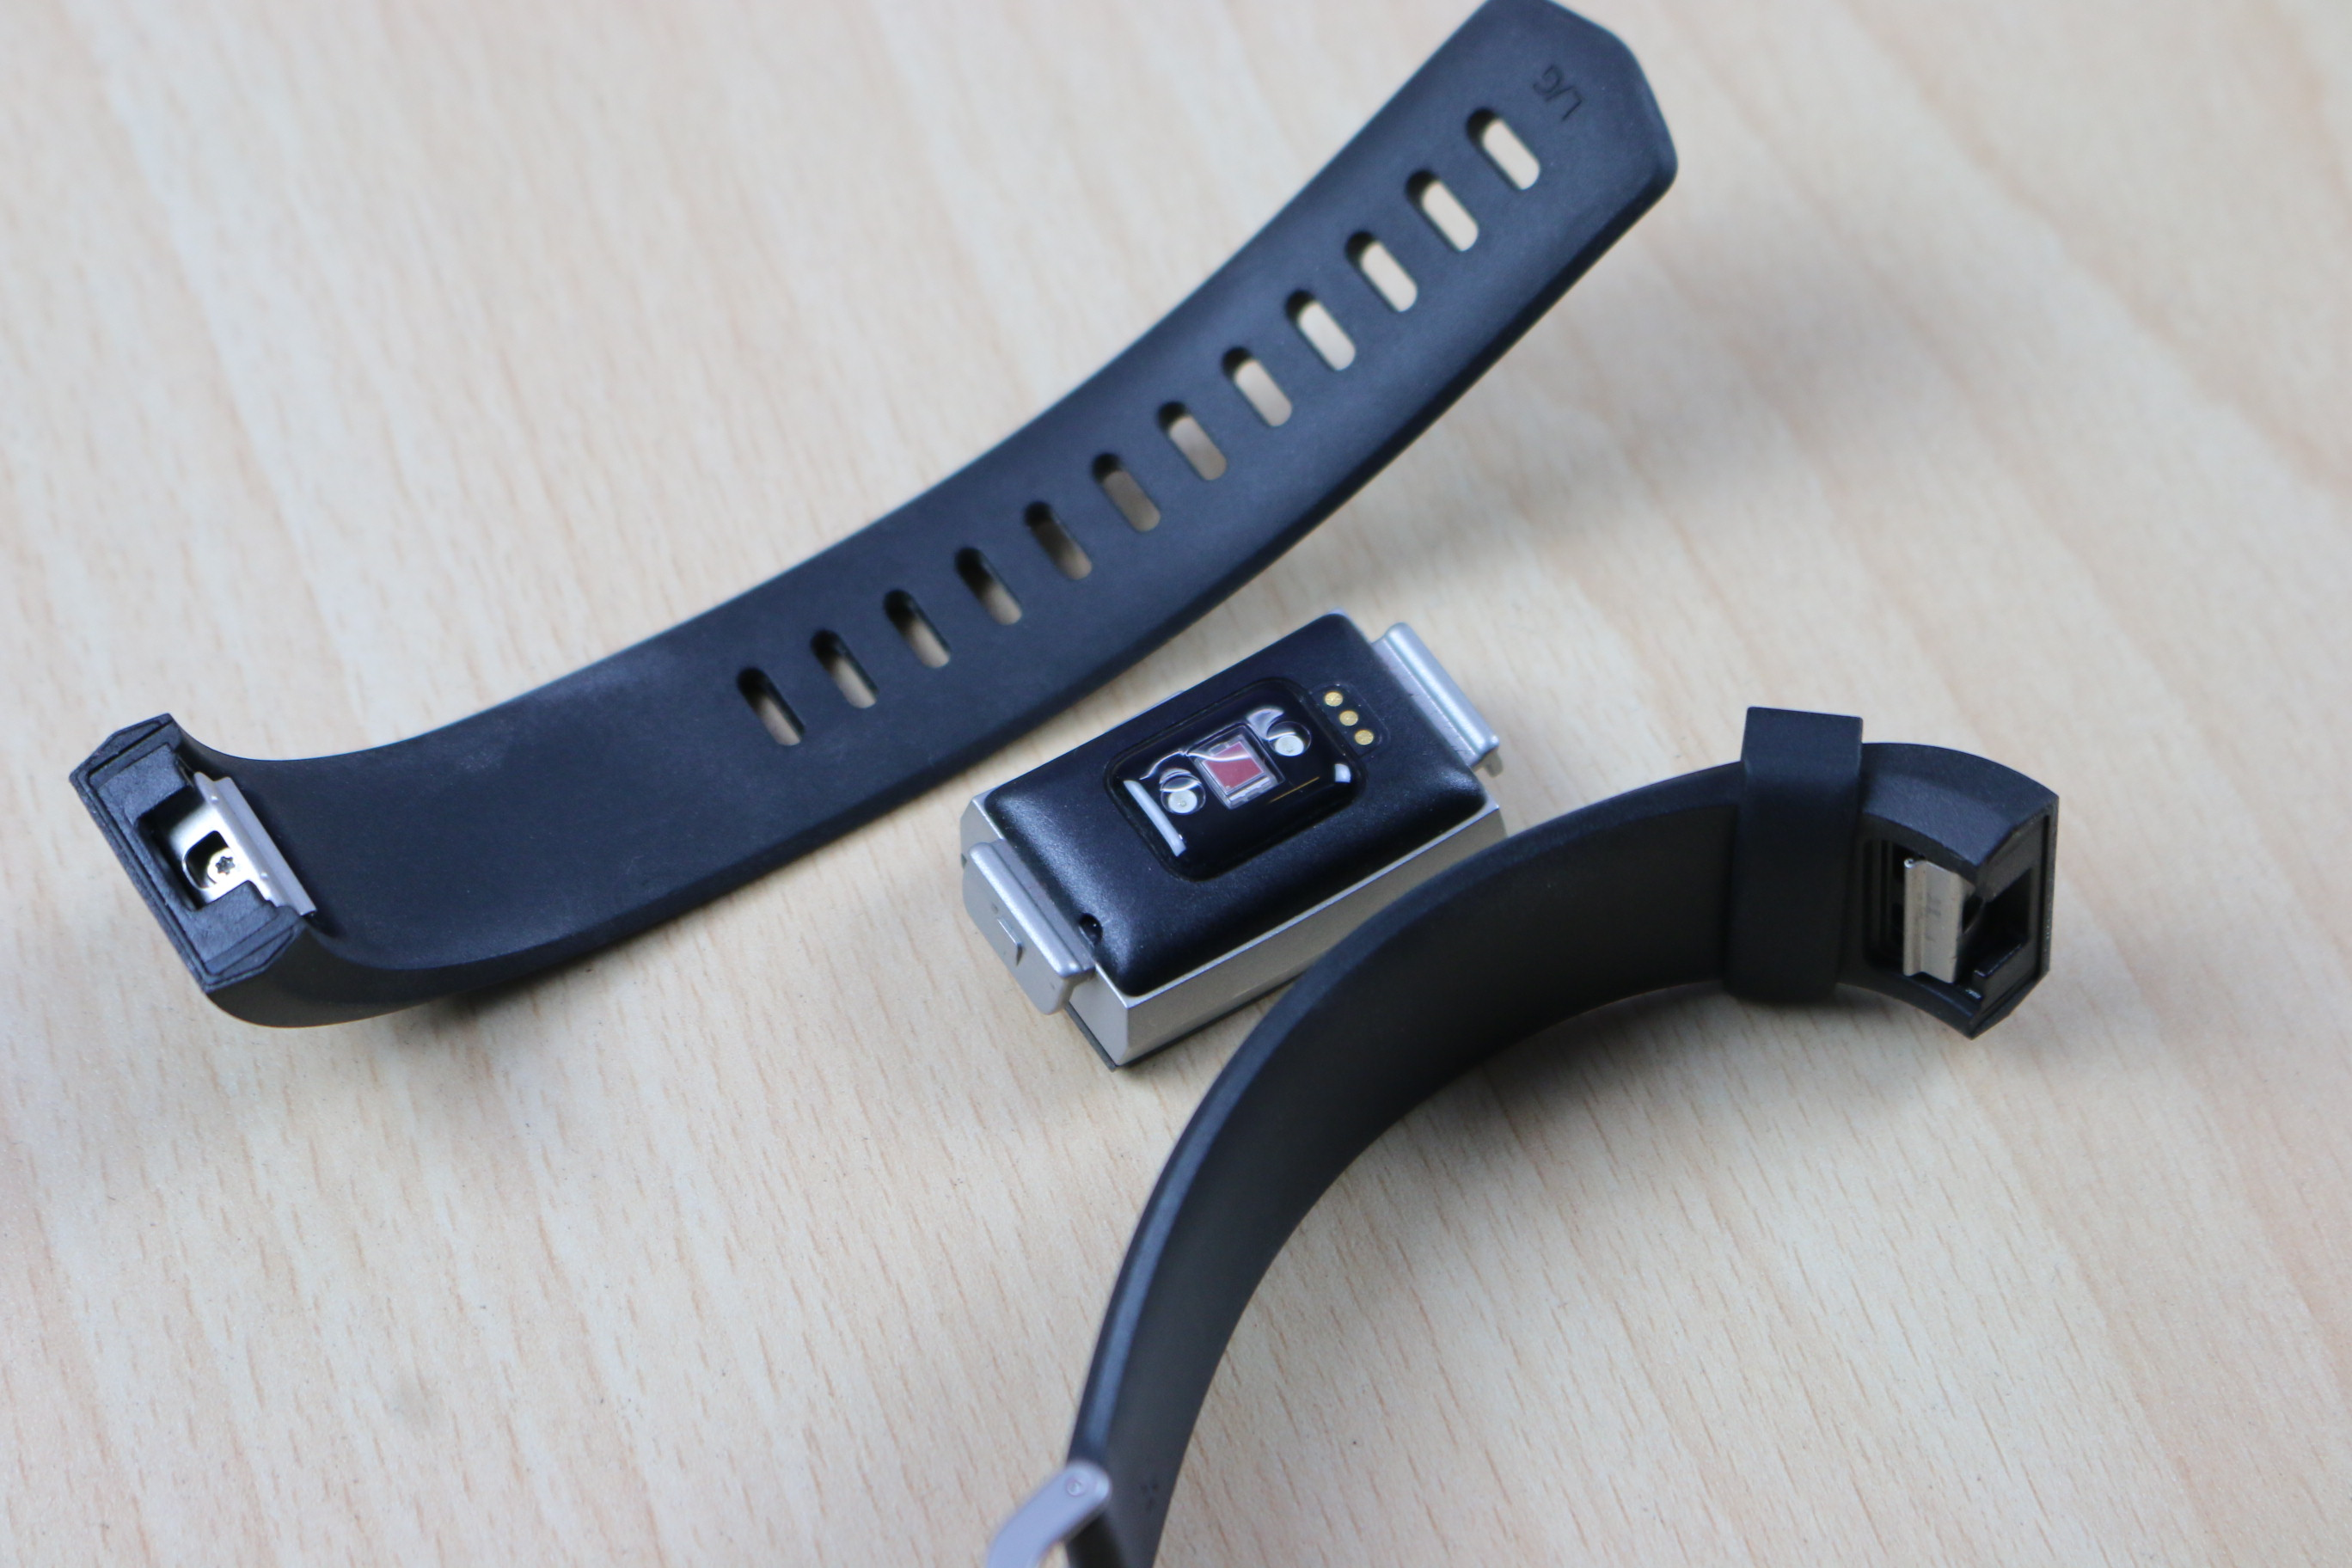 Fitbit Charge 2 Gadgets To Use